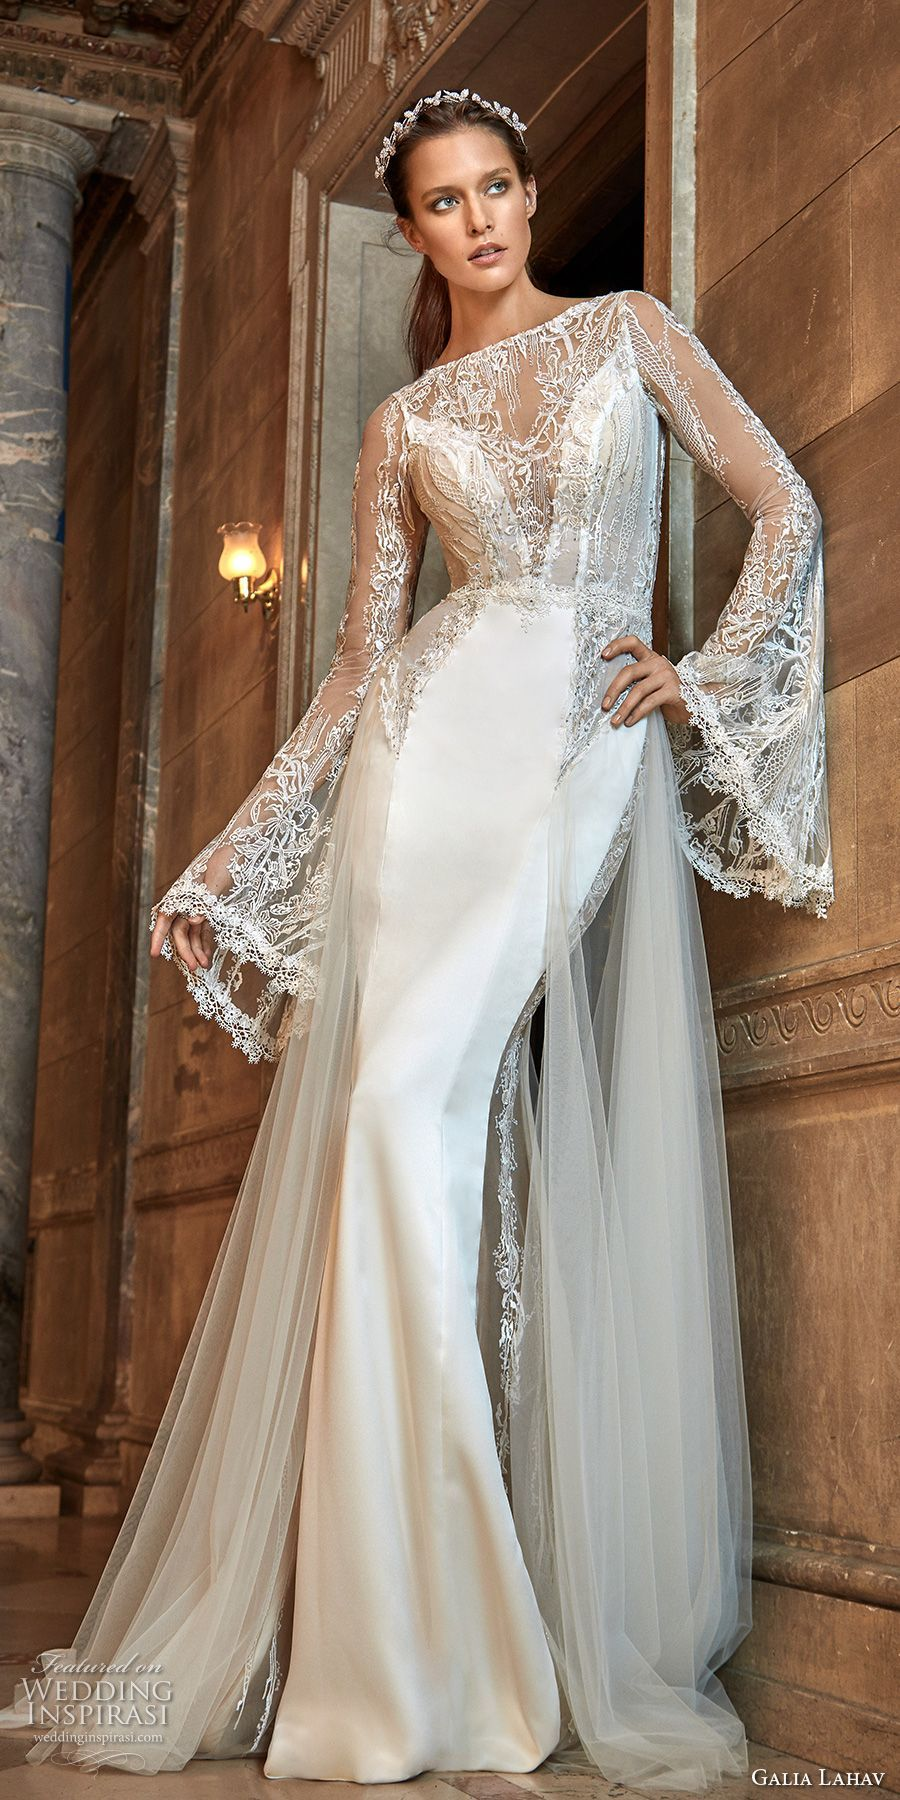 Galia lahav fall bridal long bell sleeves illusion bateau deep